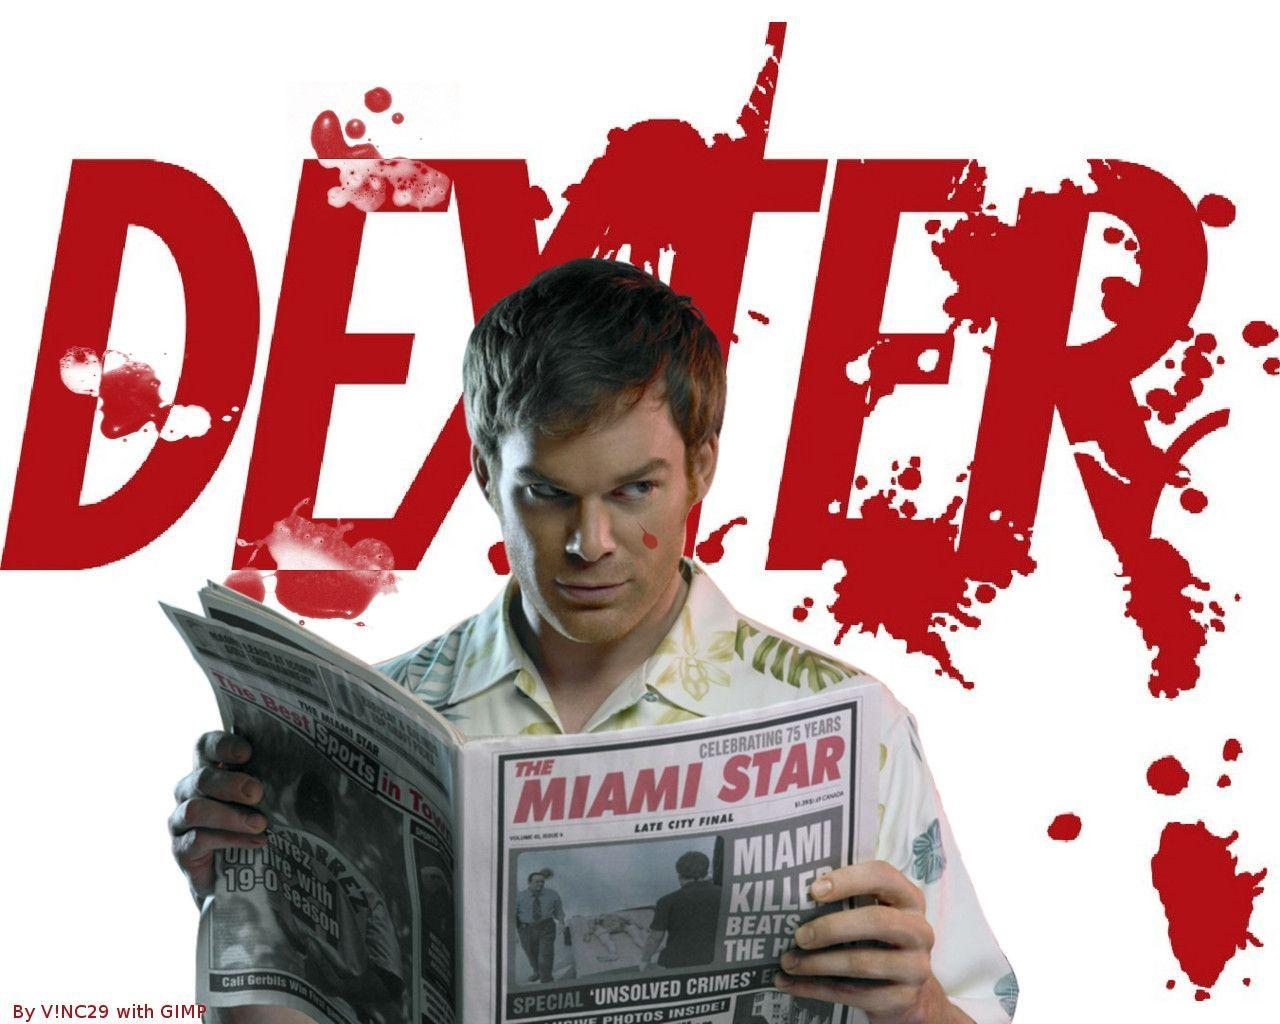 Dexter Wallpaper by vinc29 on DeviantArt